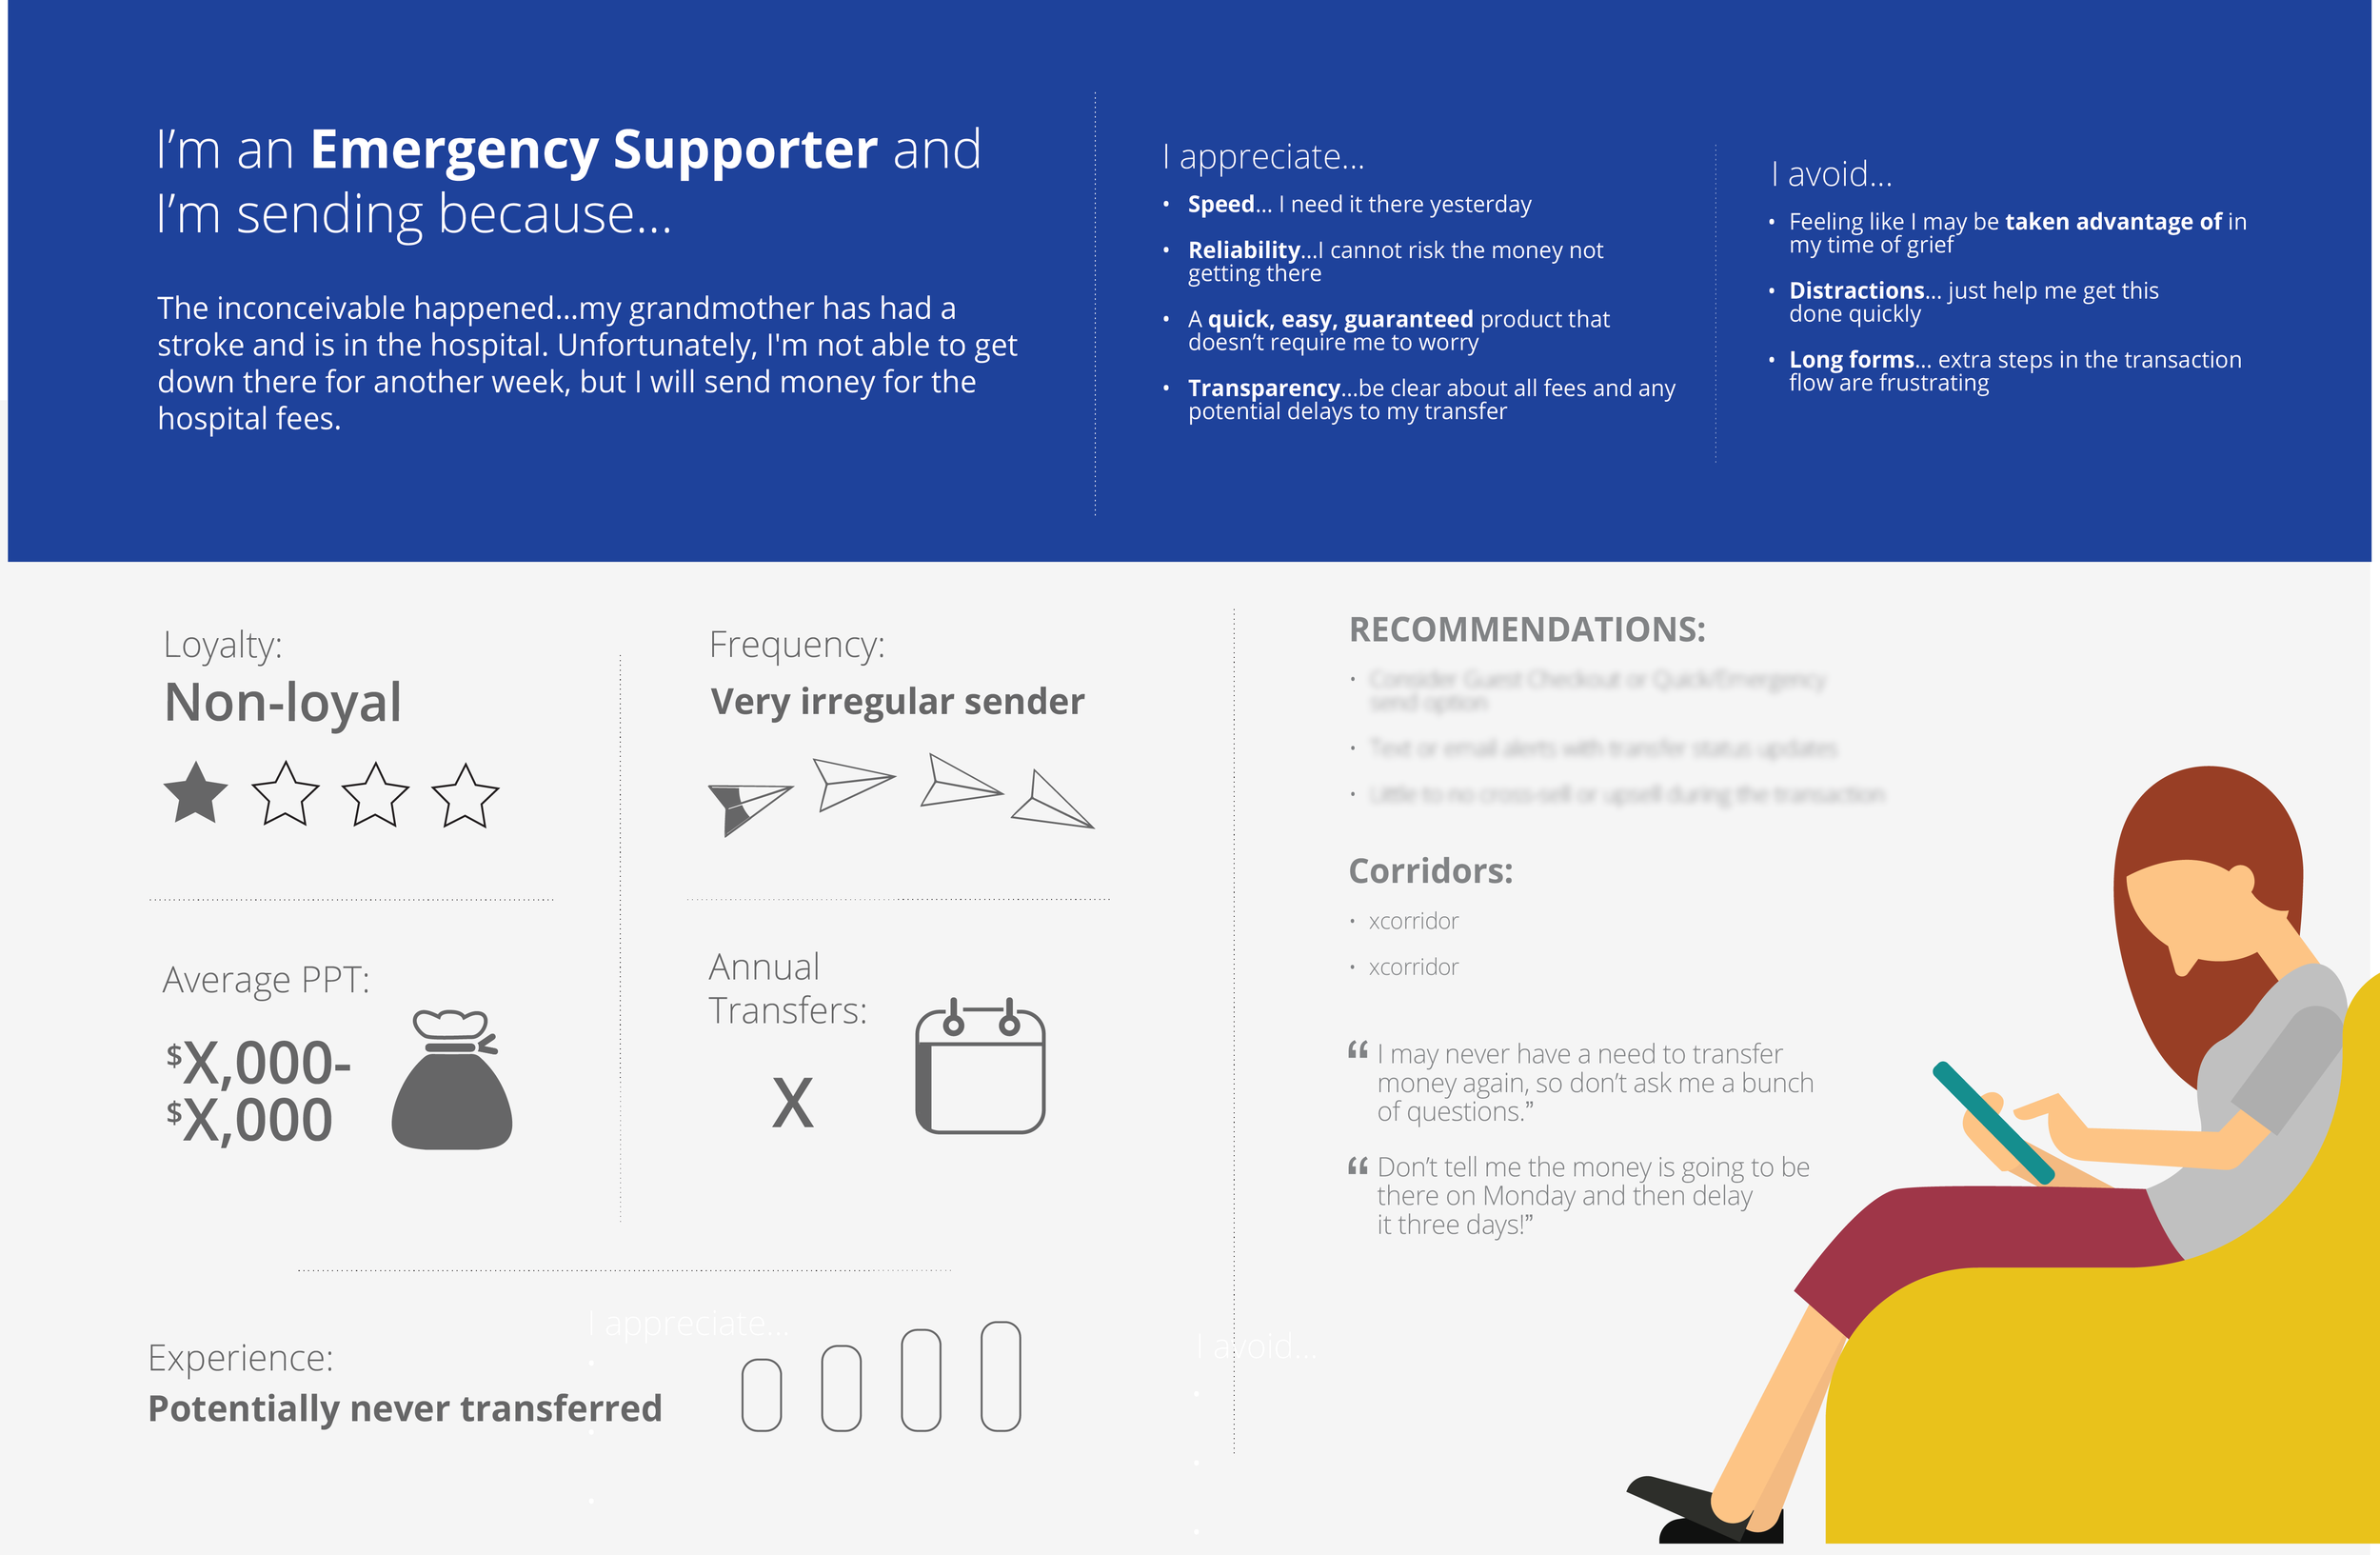 emergency_supporter.png